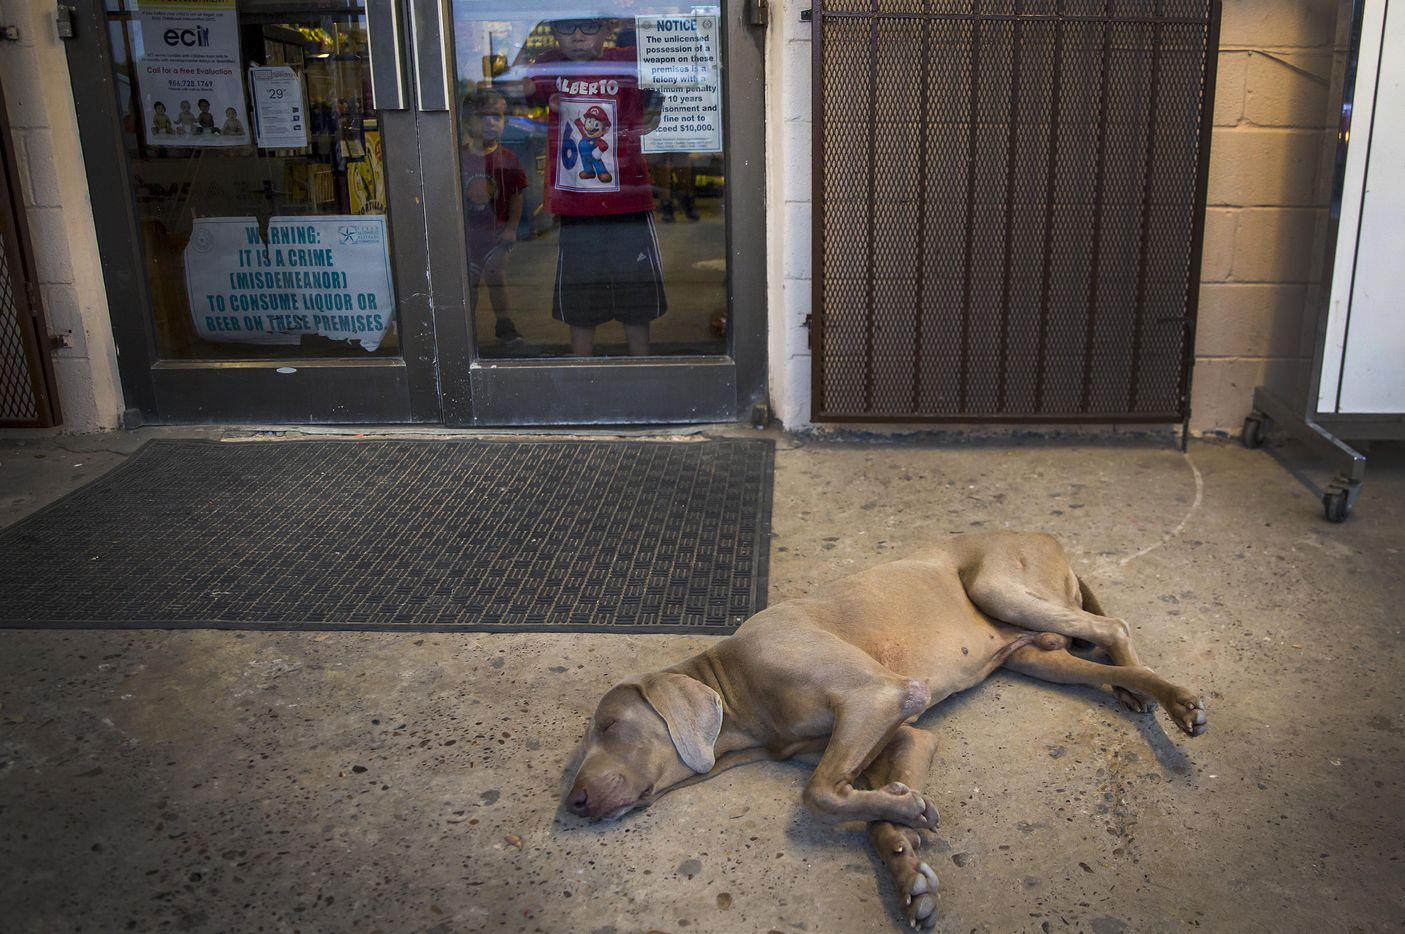 Children peek out of the C & C Kountry Store as a dog sleeps on the pavement outside on May 10, 2017, in El Cenizo, Texas.